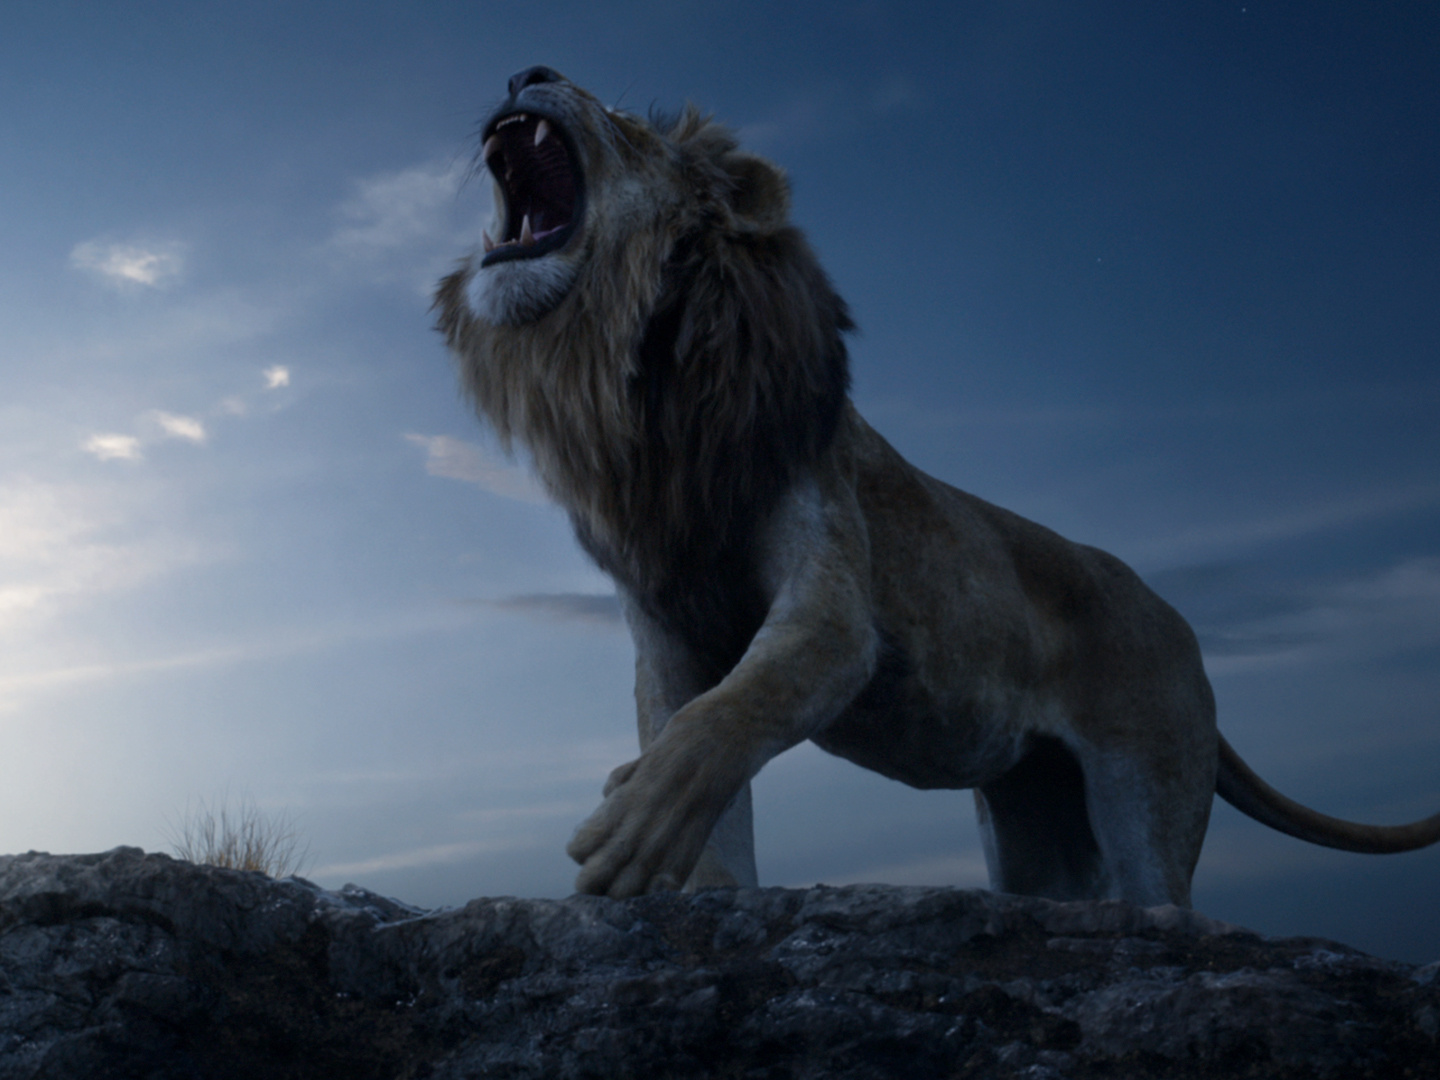 The Lion King,